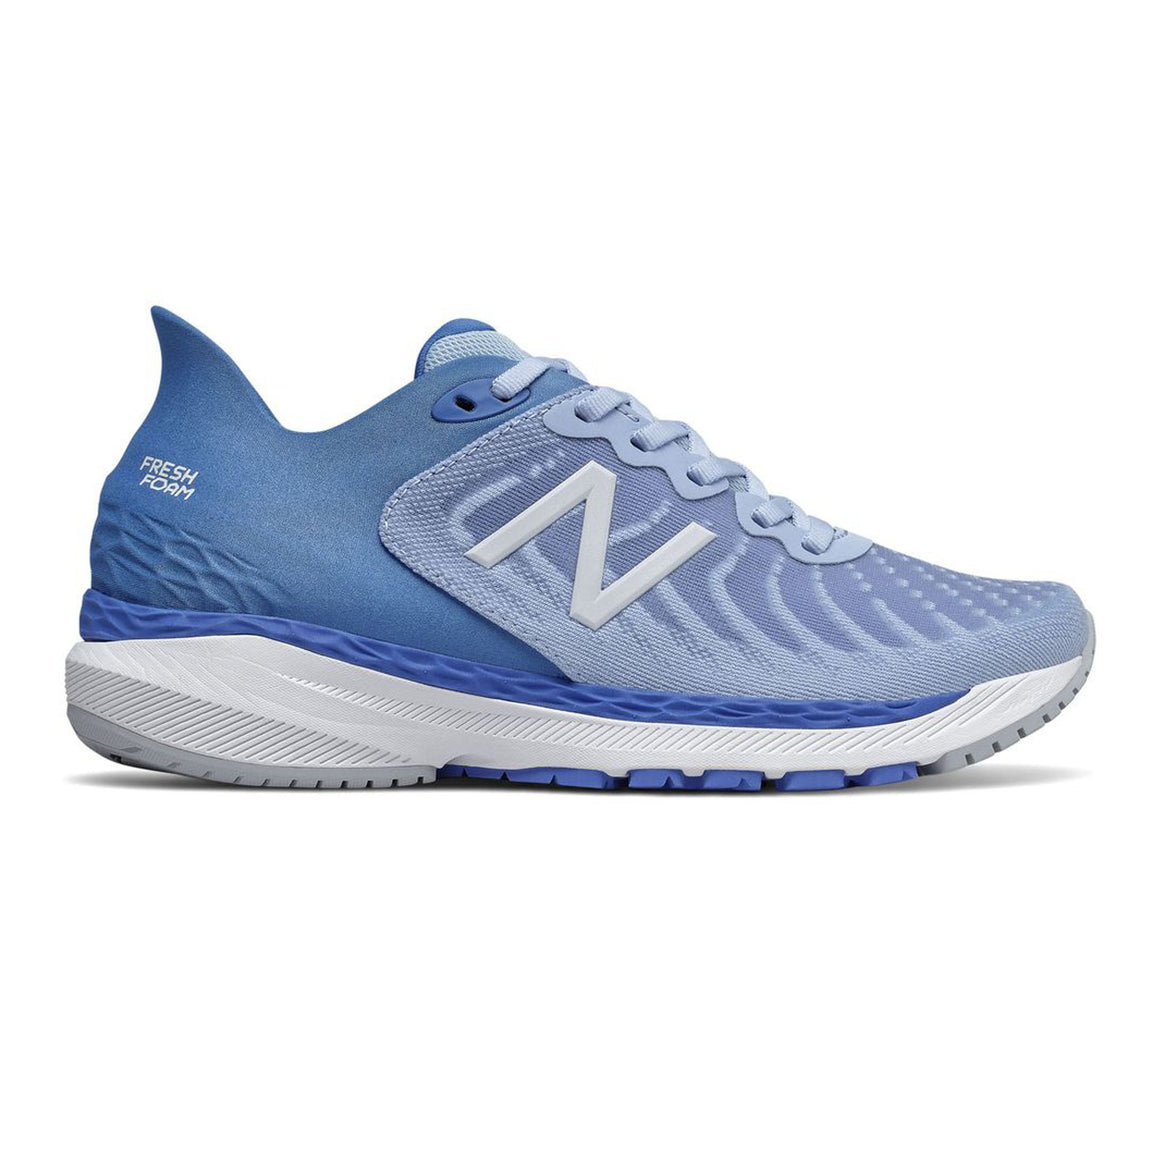 860v10 for Women Running Shoe in Team Carolina with Moon Dust